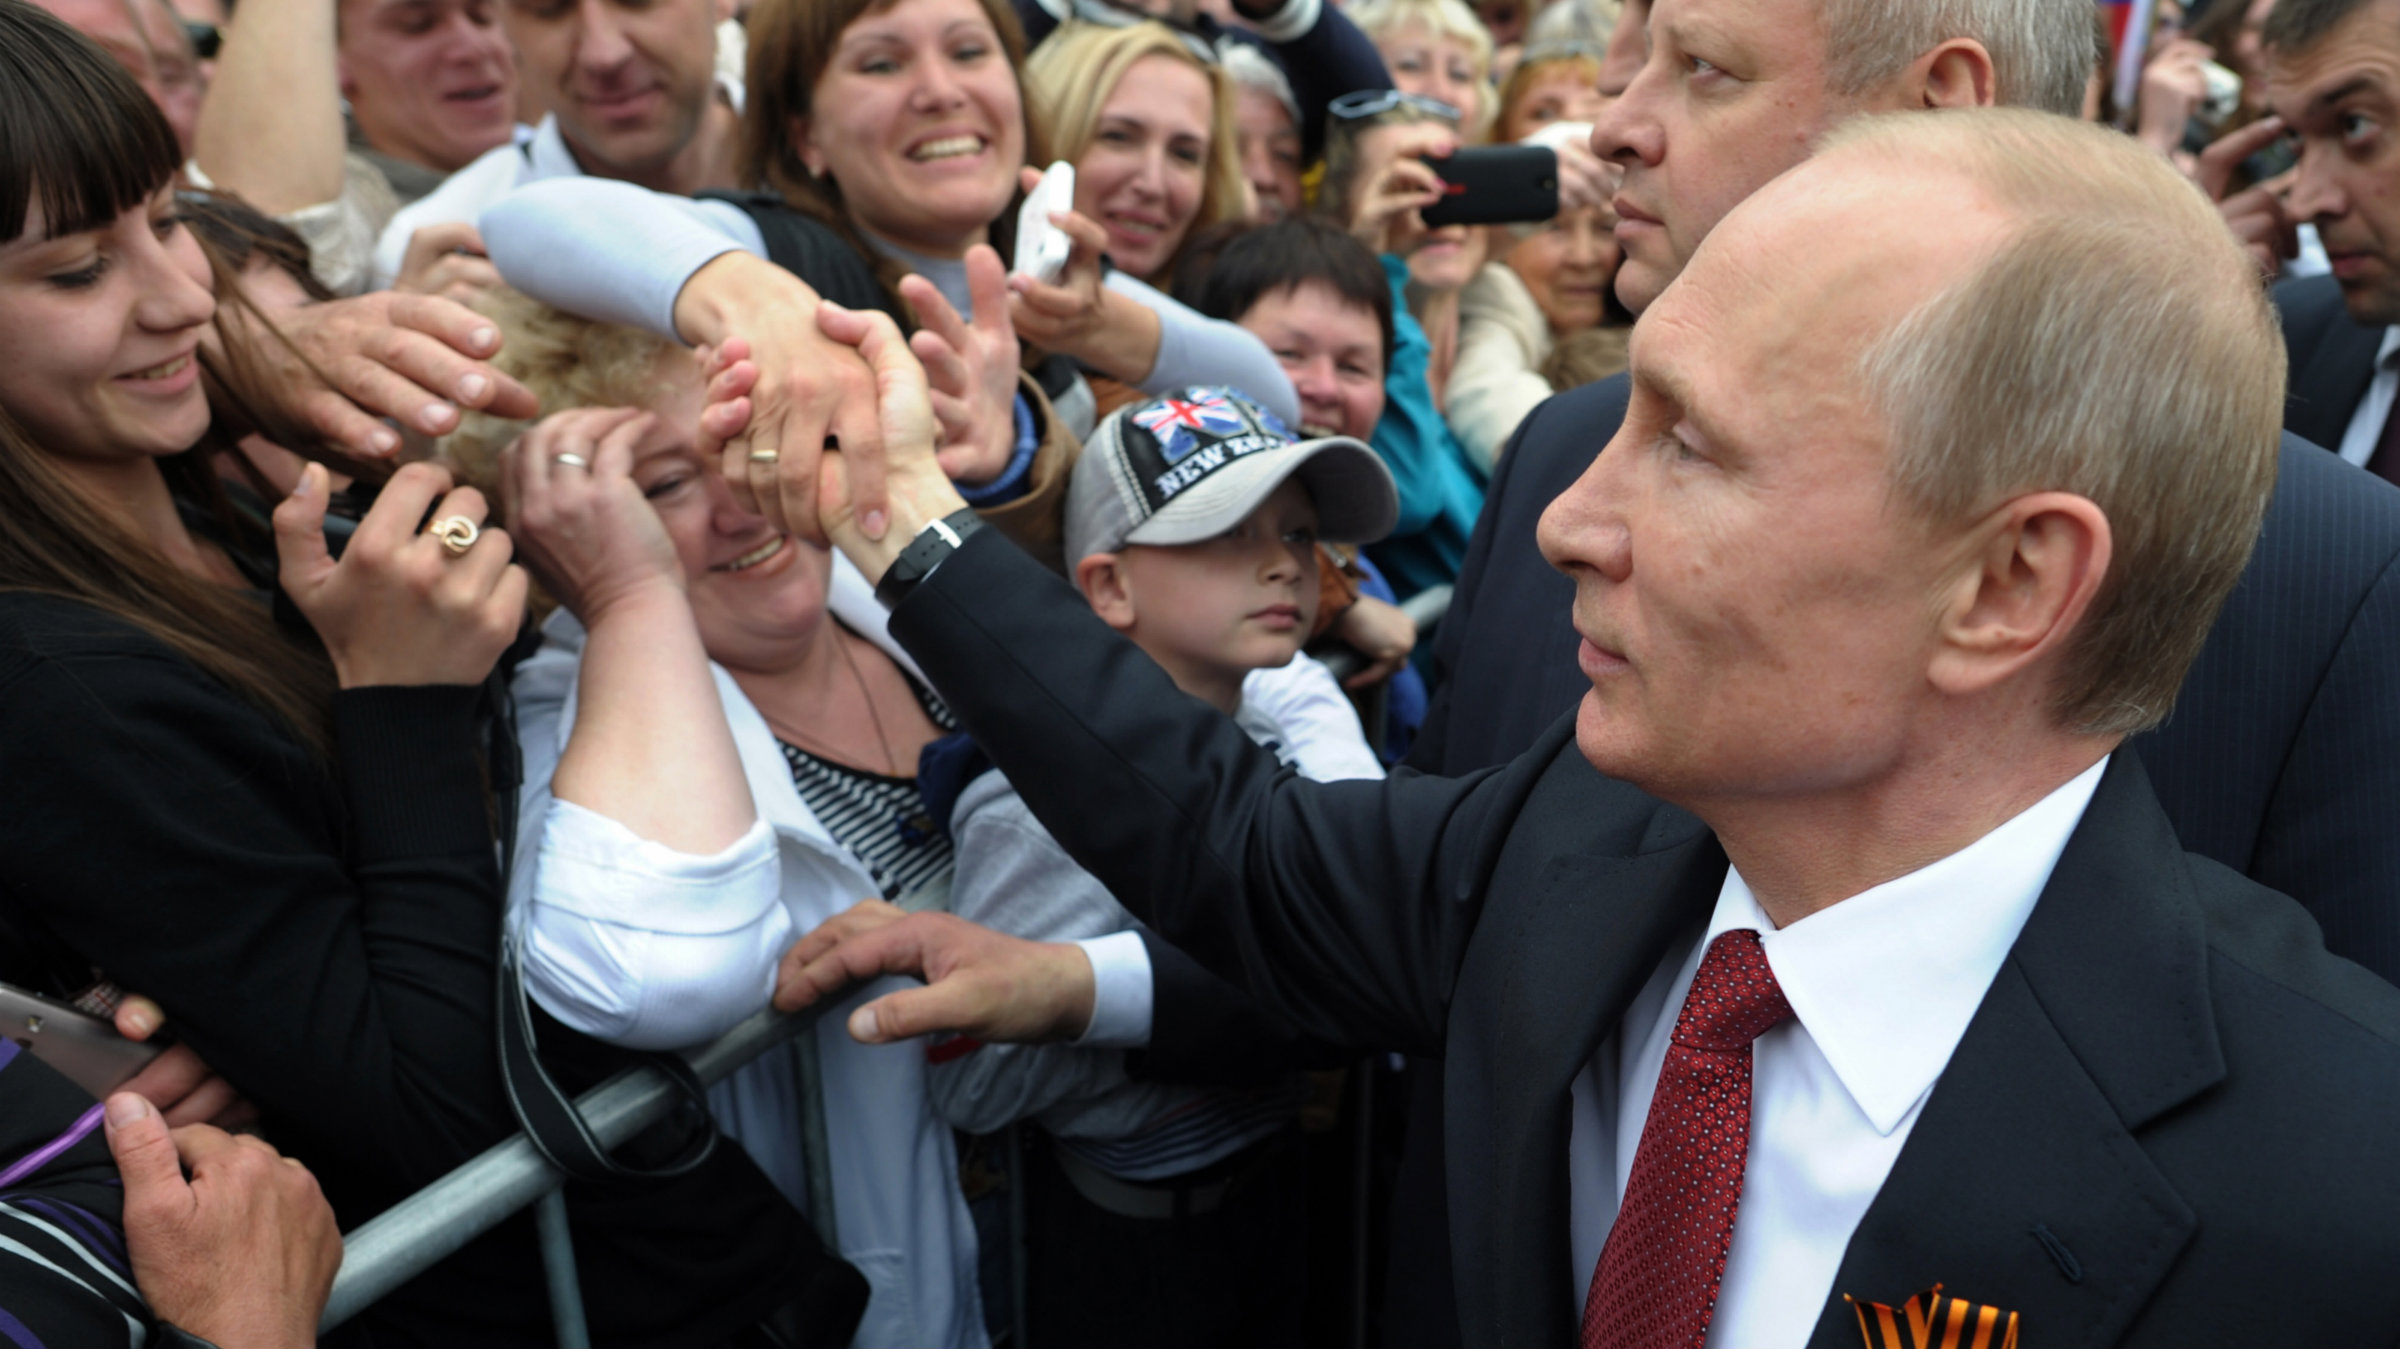 Russian President Vladimir Putin is greeted by people in Sevastopol where he attends celebrations marking Victory Day.